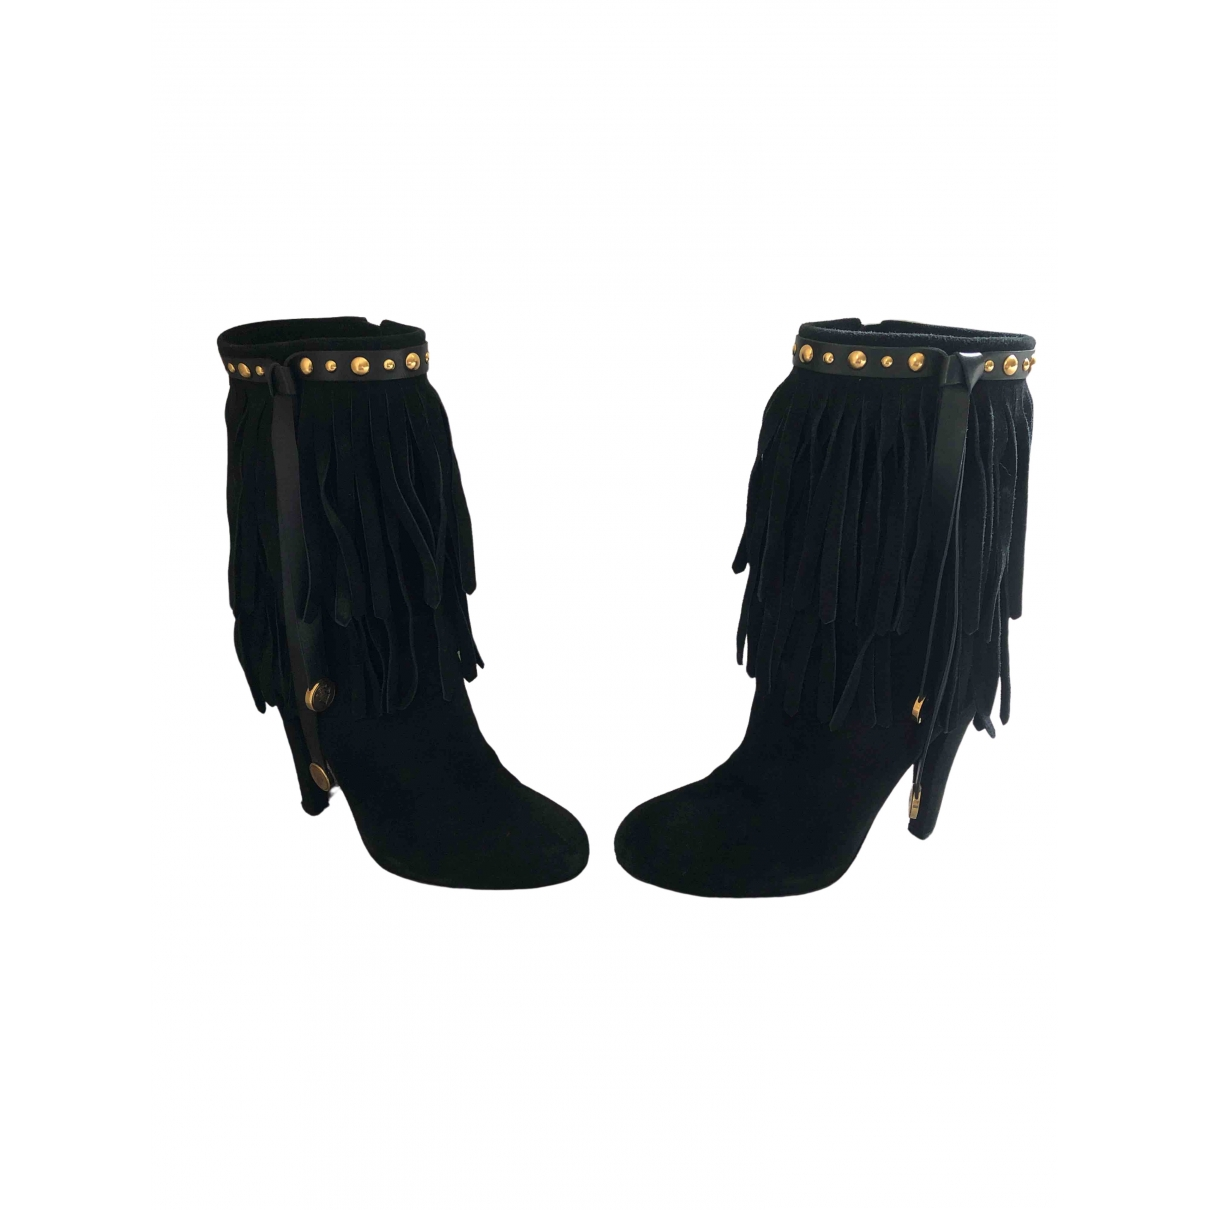 Gucci \N Black Suede Boots for Women 38 EU